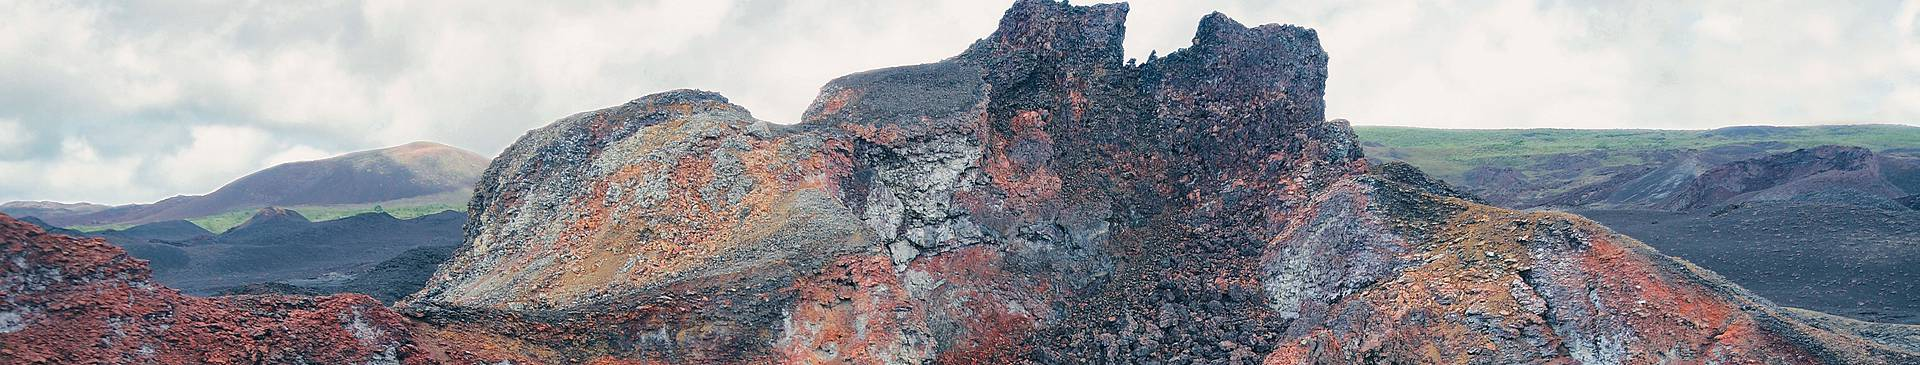 Volcano tours in the Galapagos Islands